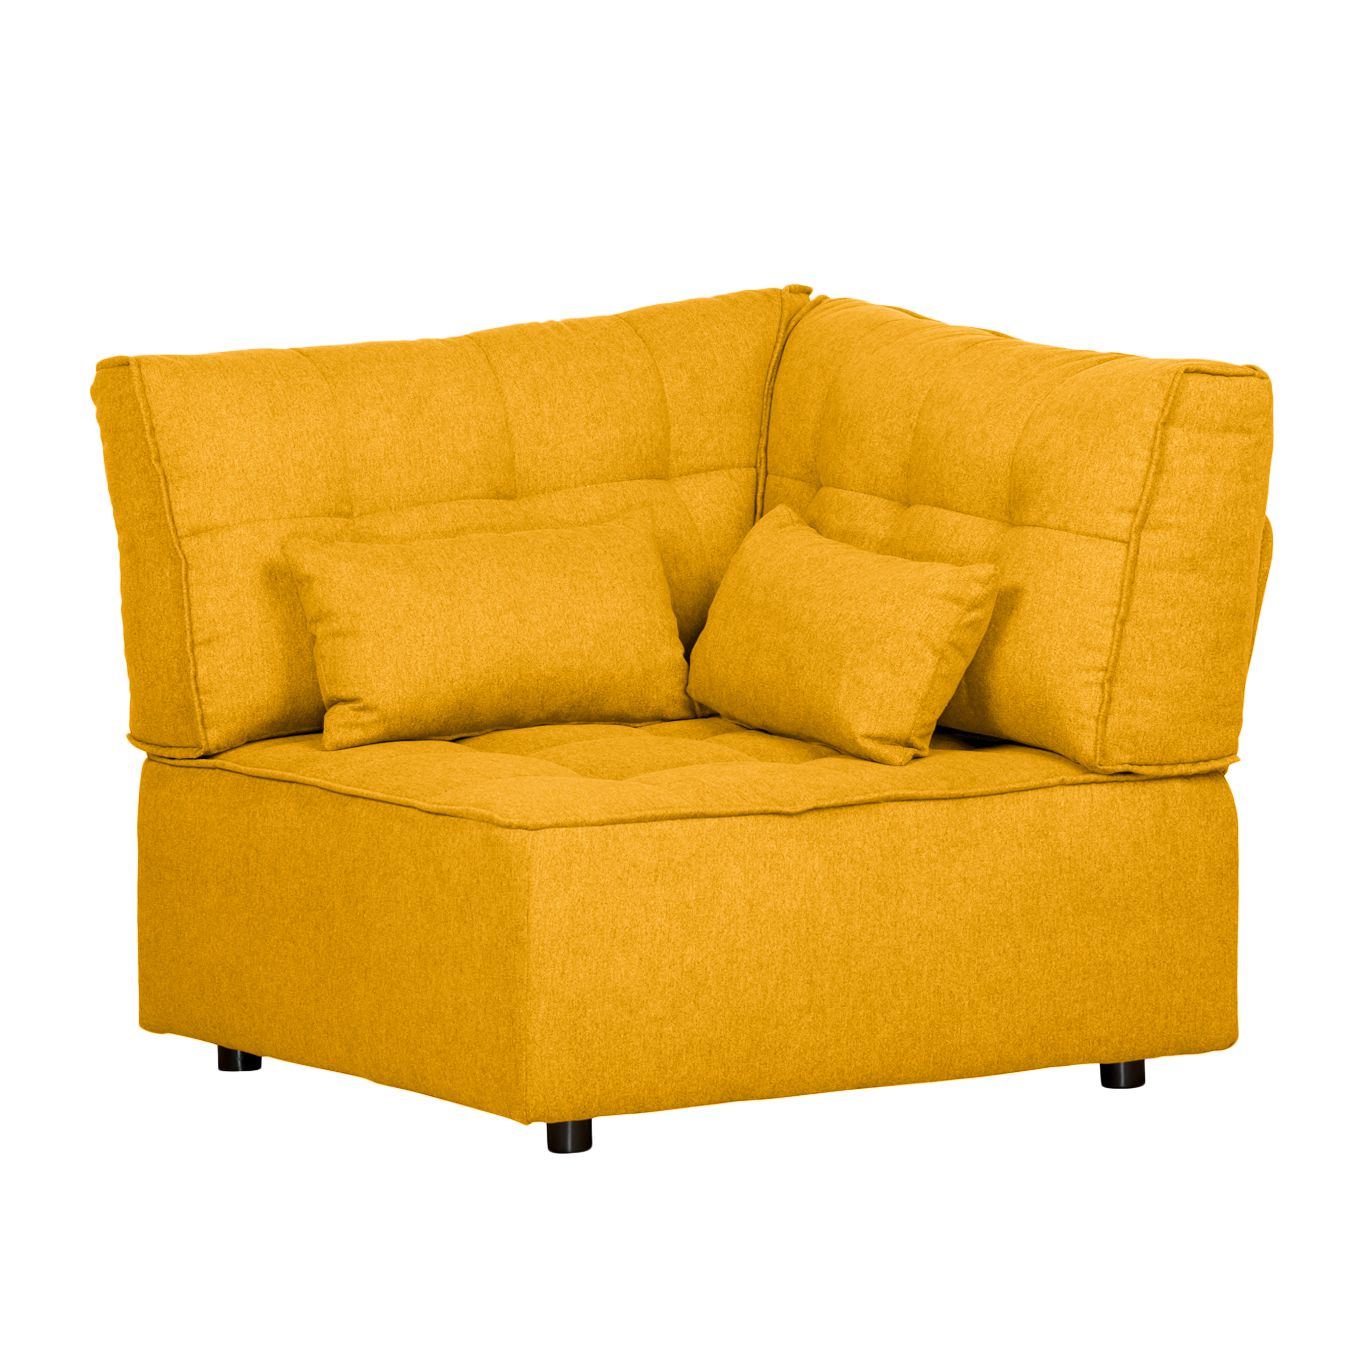 Modul Sofa Gnstig Beautiful Affordable Xxl Sofa U Form Frisch Xxl Leder Gnstig Fr Ihre With Xxl Sofa Leder With Modul Sofa Gnstig Top Free Retro Sofa Gnstig With Retro Sofa Gnstig